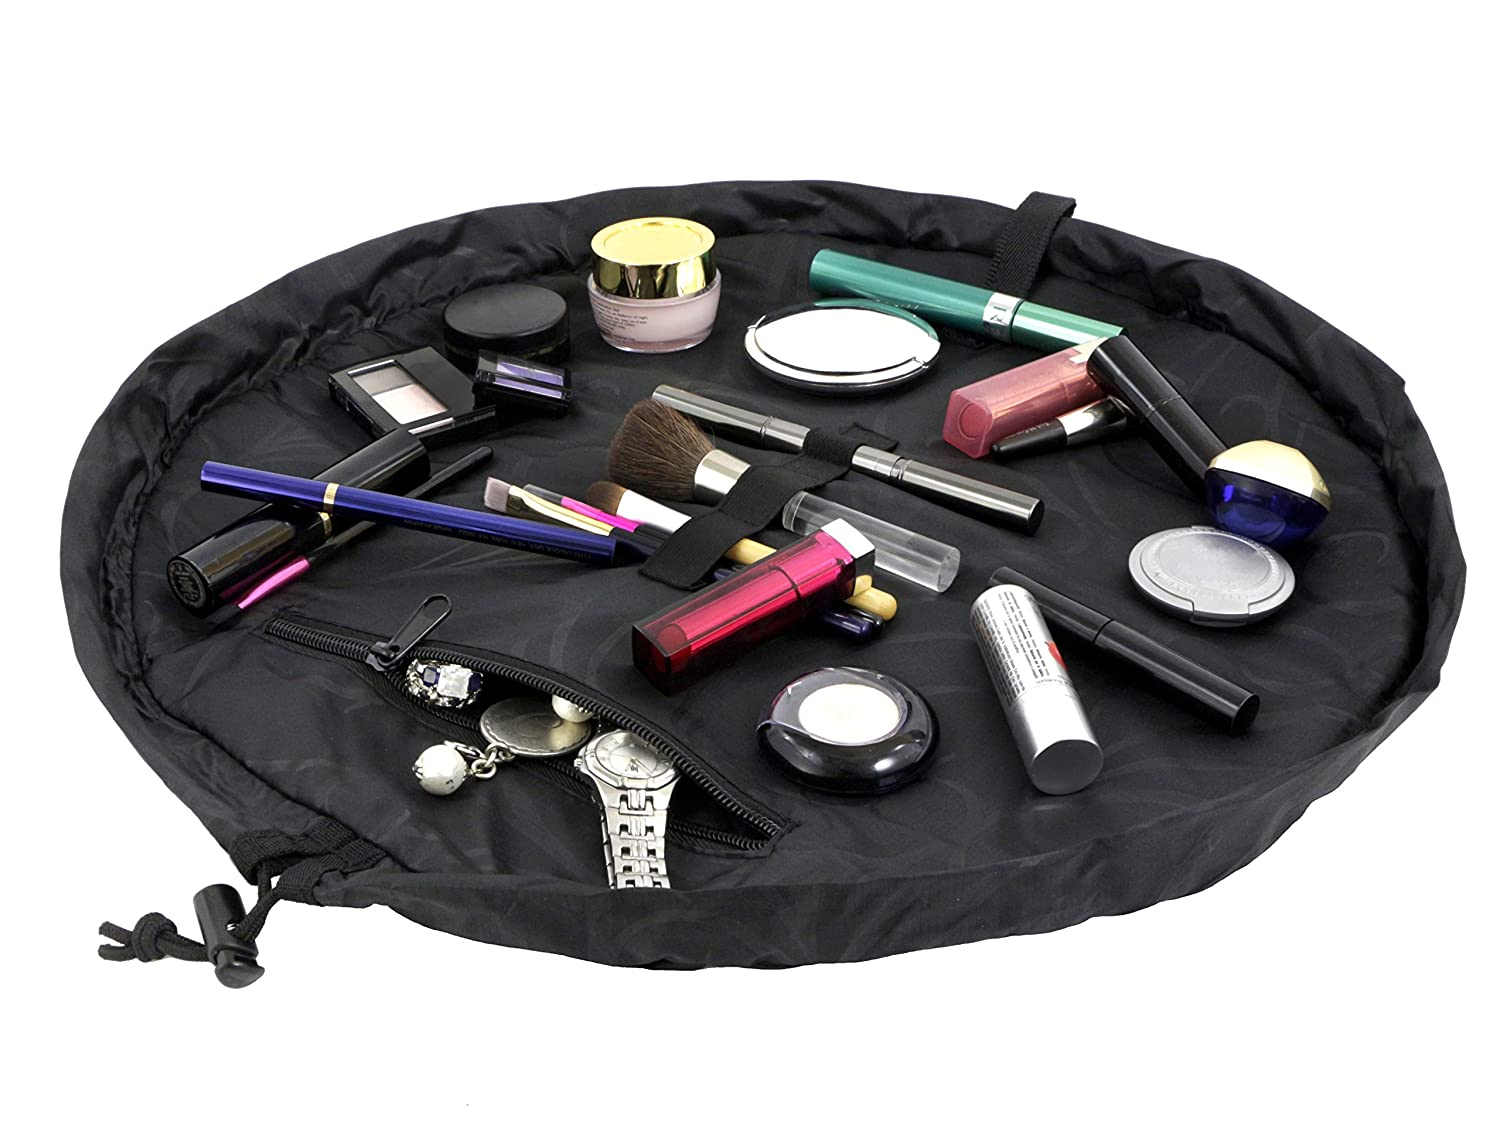 Amazon.com: Lay-n-Go Cosmo Cosmetic Bag, Black: Toys & Games